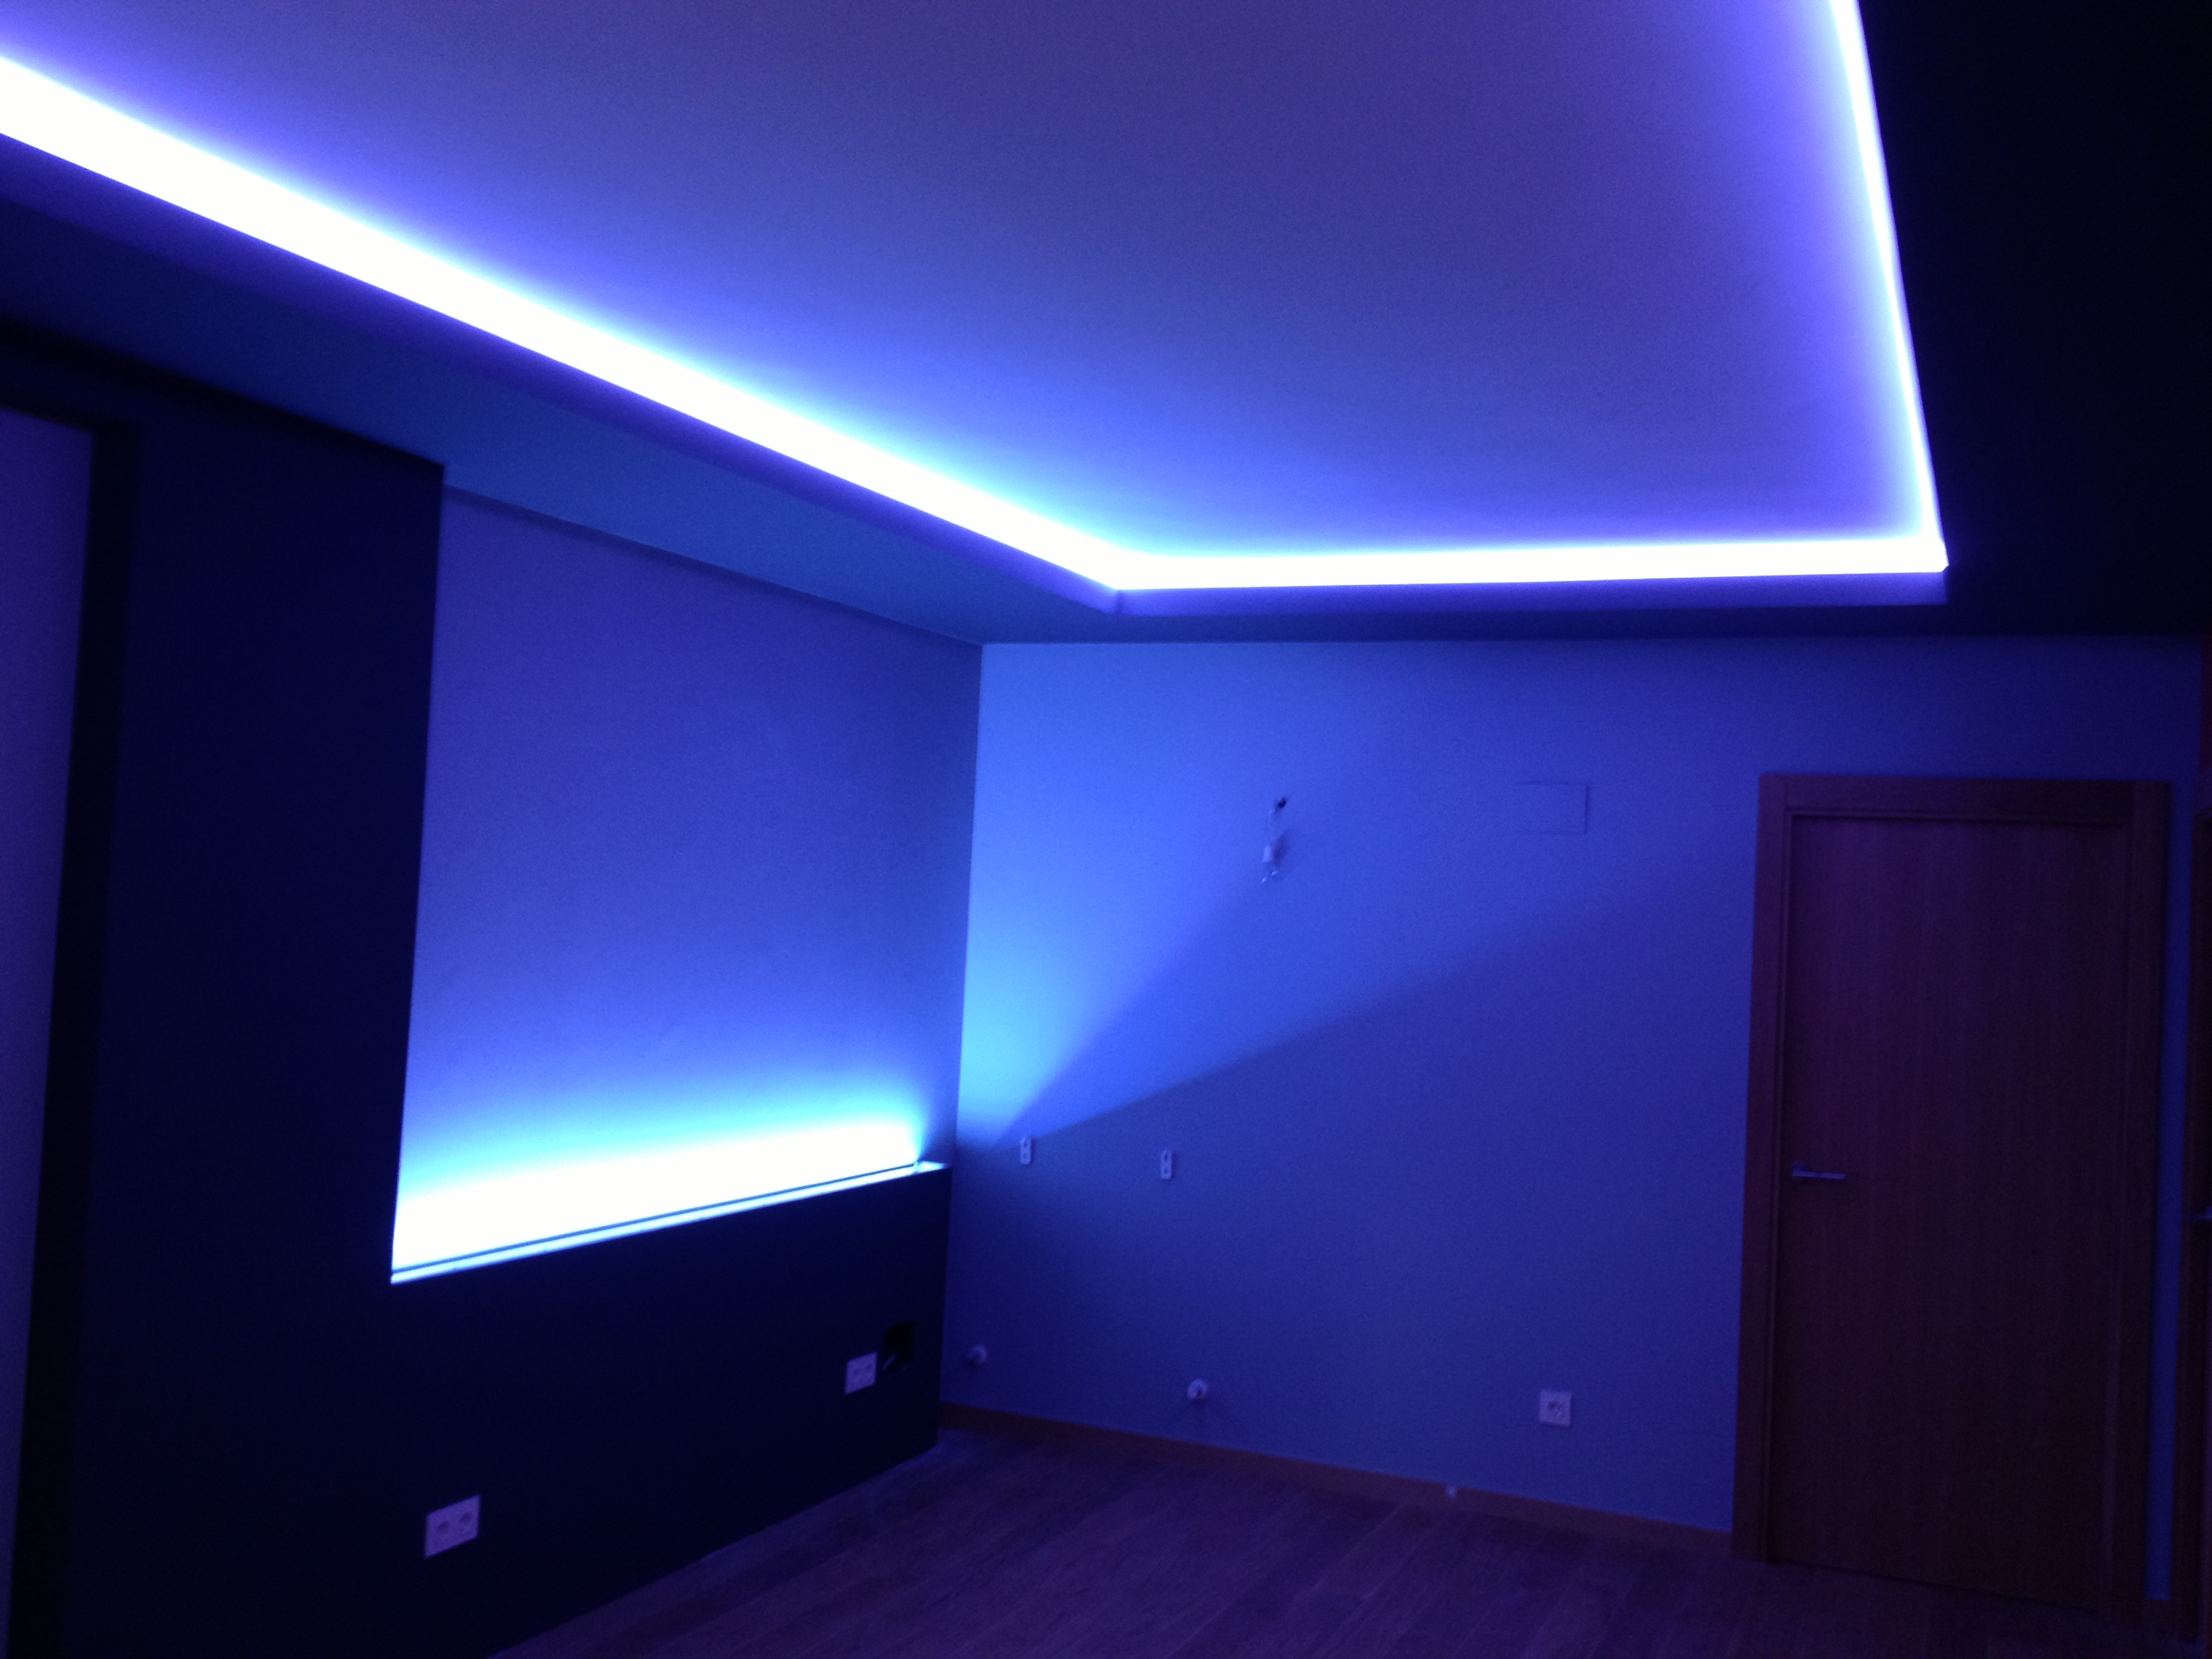 Rgb blog meetthings art culos sobre leds de venta en - Luces led habitacion ...